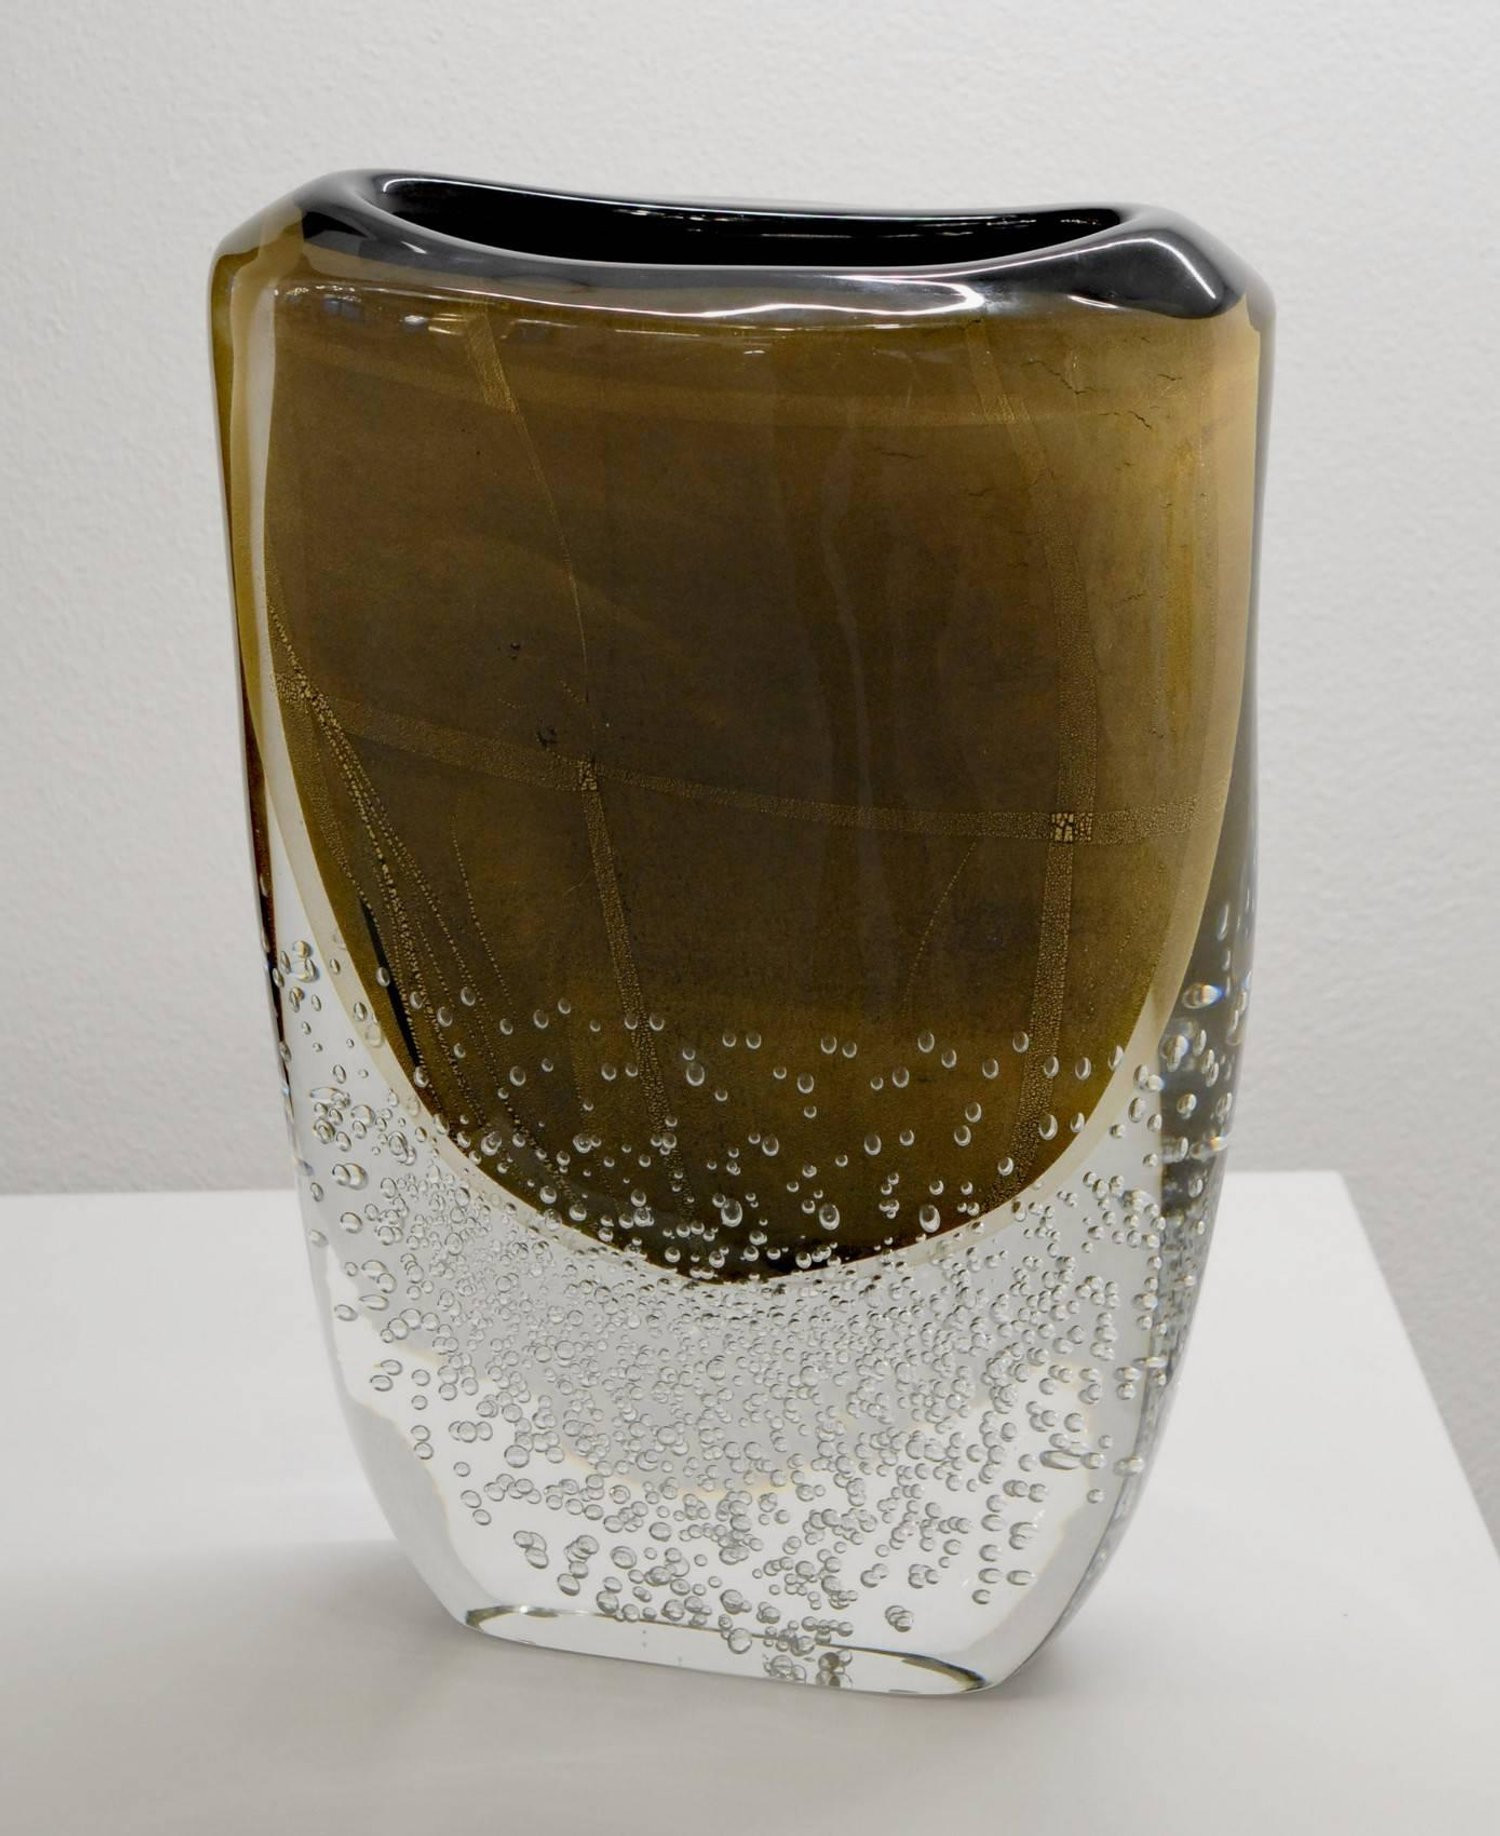 Murano Glass Vase Signed Of Romano Dona Tall Incalmo Black Gold Vase Murano sommerso Bubbles Regarding Romano Dona Tall Incalmo Black Gold Vase Murano sommerso Bubbles Pulegoso for Sale at 1stdibs